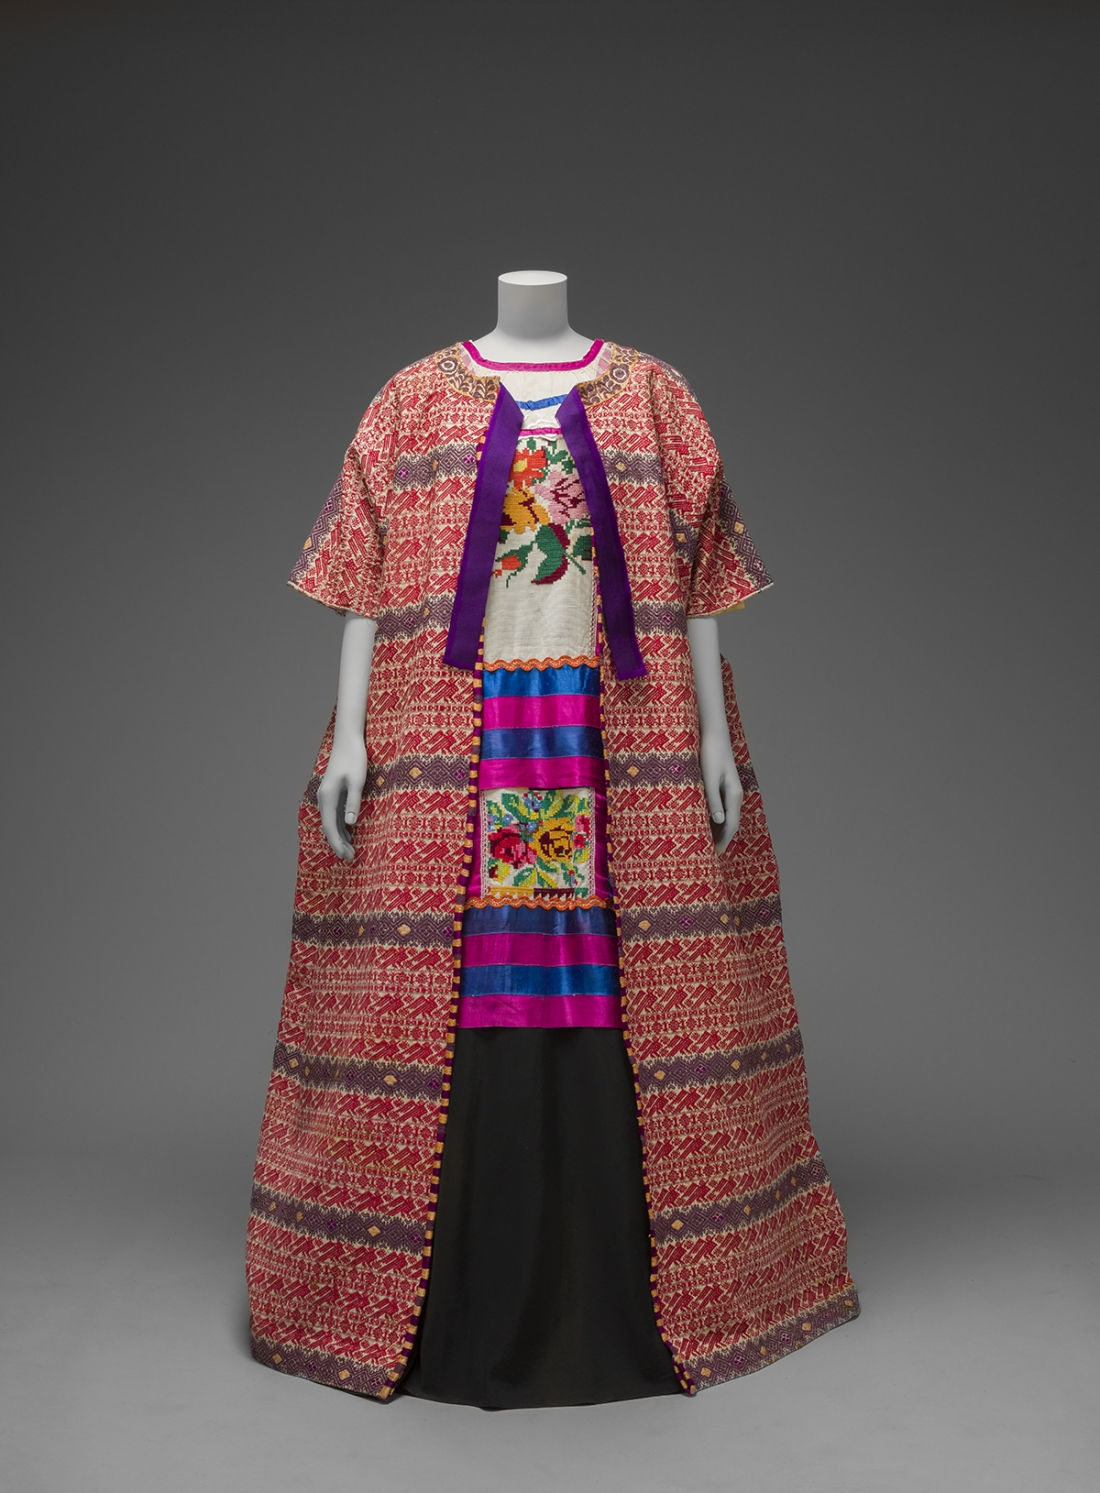 Guatemalan cotton coat worn with Mazatec huipil and plain floor-length skirt Museo Frida Kahlo © Diego Rivera and Frida Kahlo Archives, Banco de México, Fiduciary of the Trust of the Diego Riviera and Frida Kahlo Museums